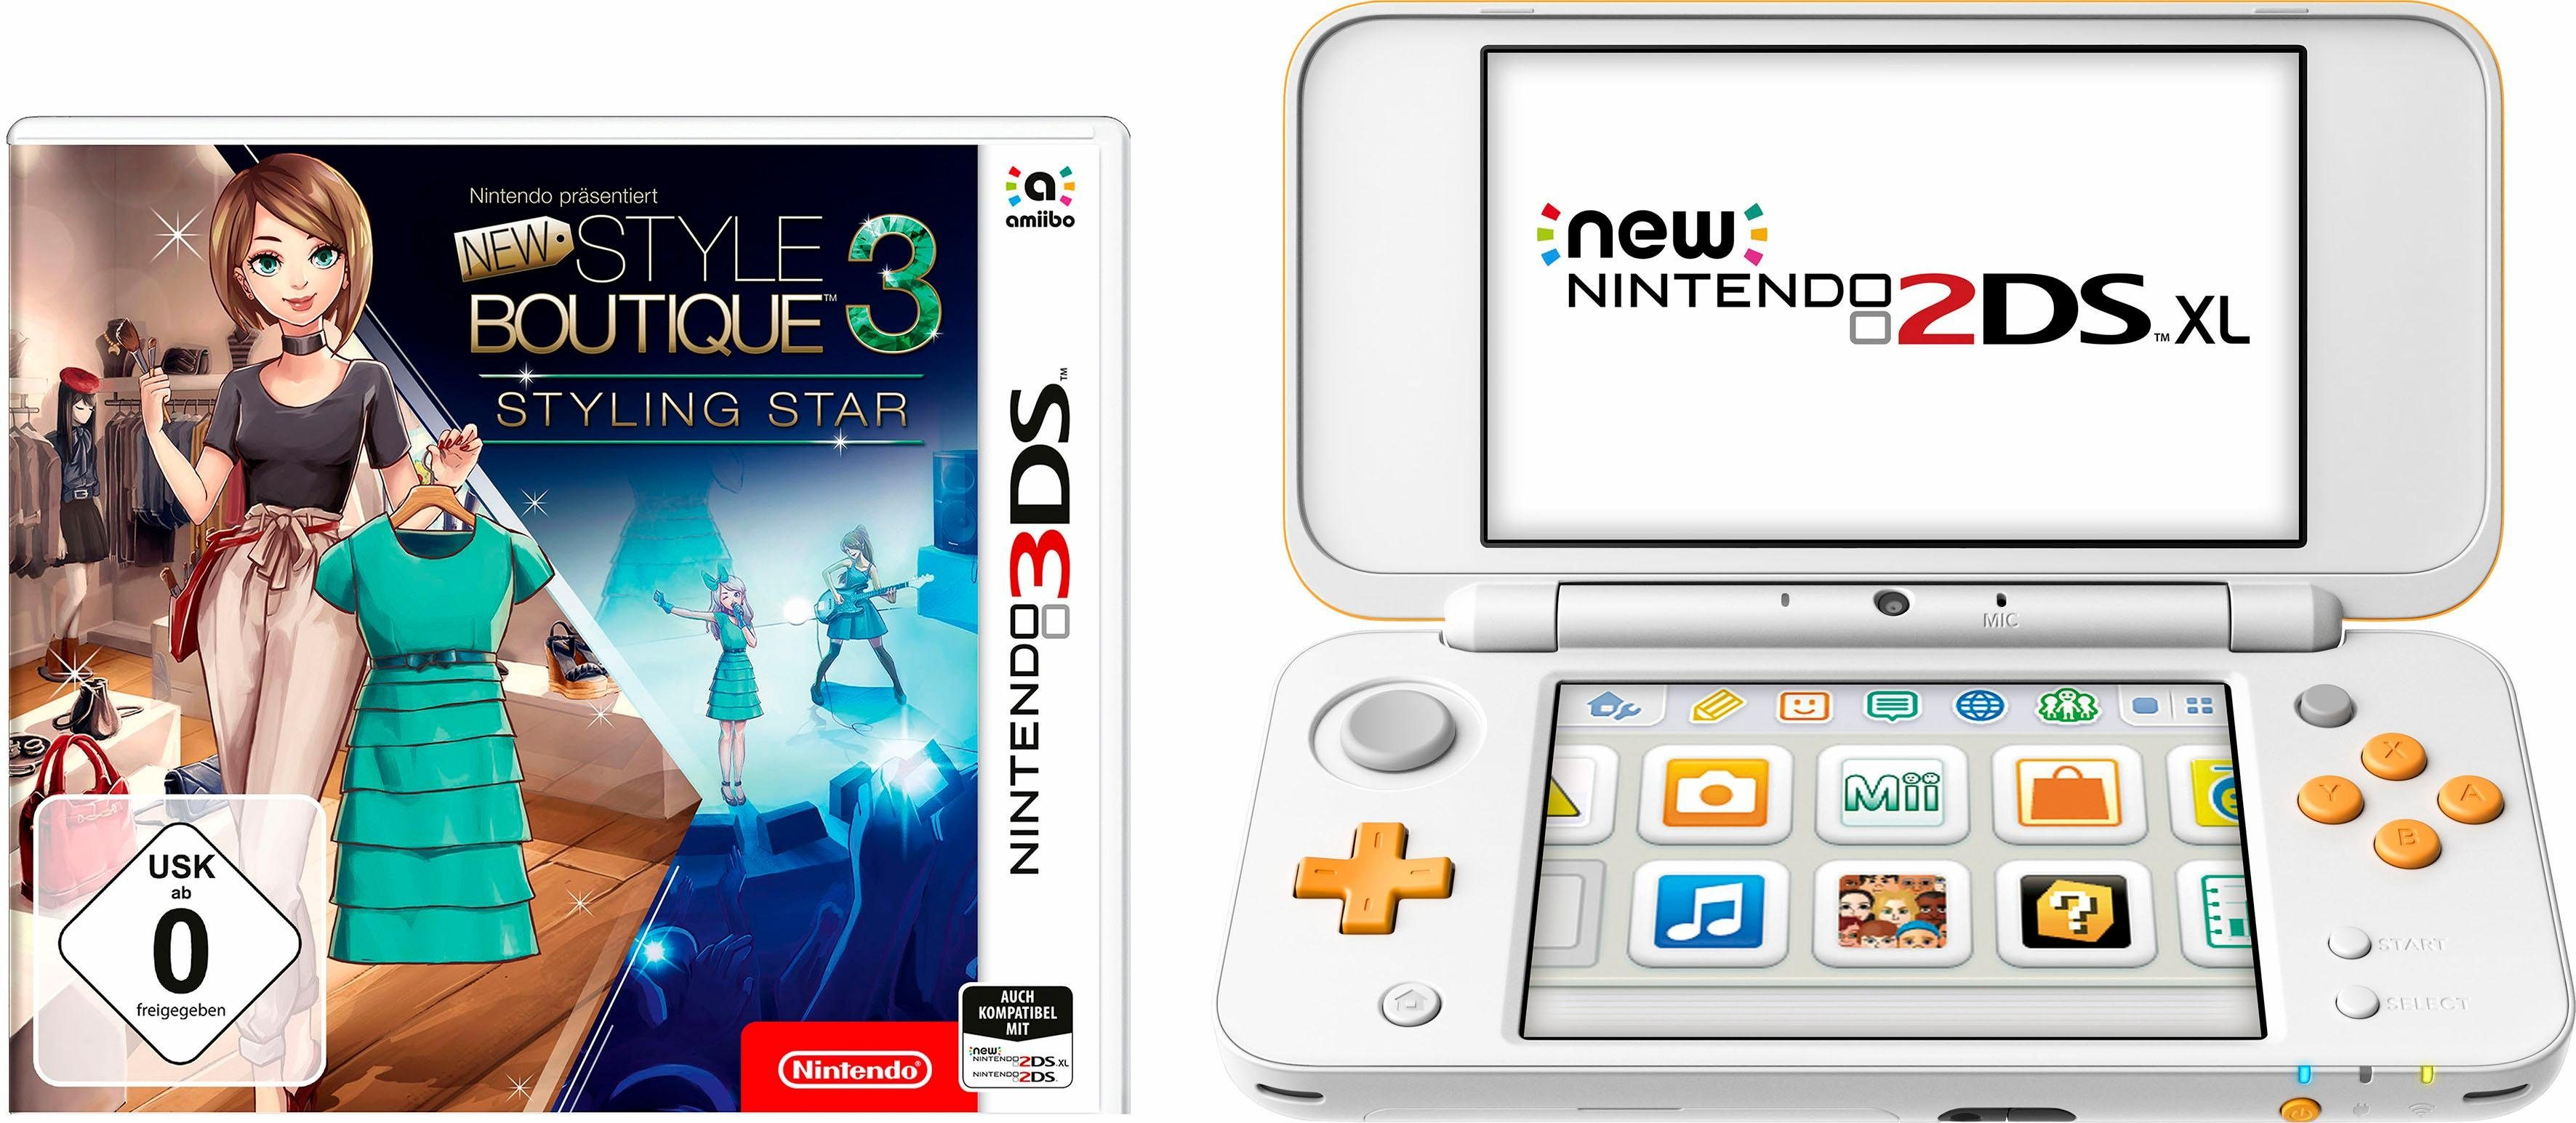 Nintendo New 2DS XL + New Style Boutique 3